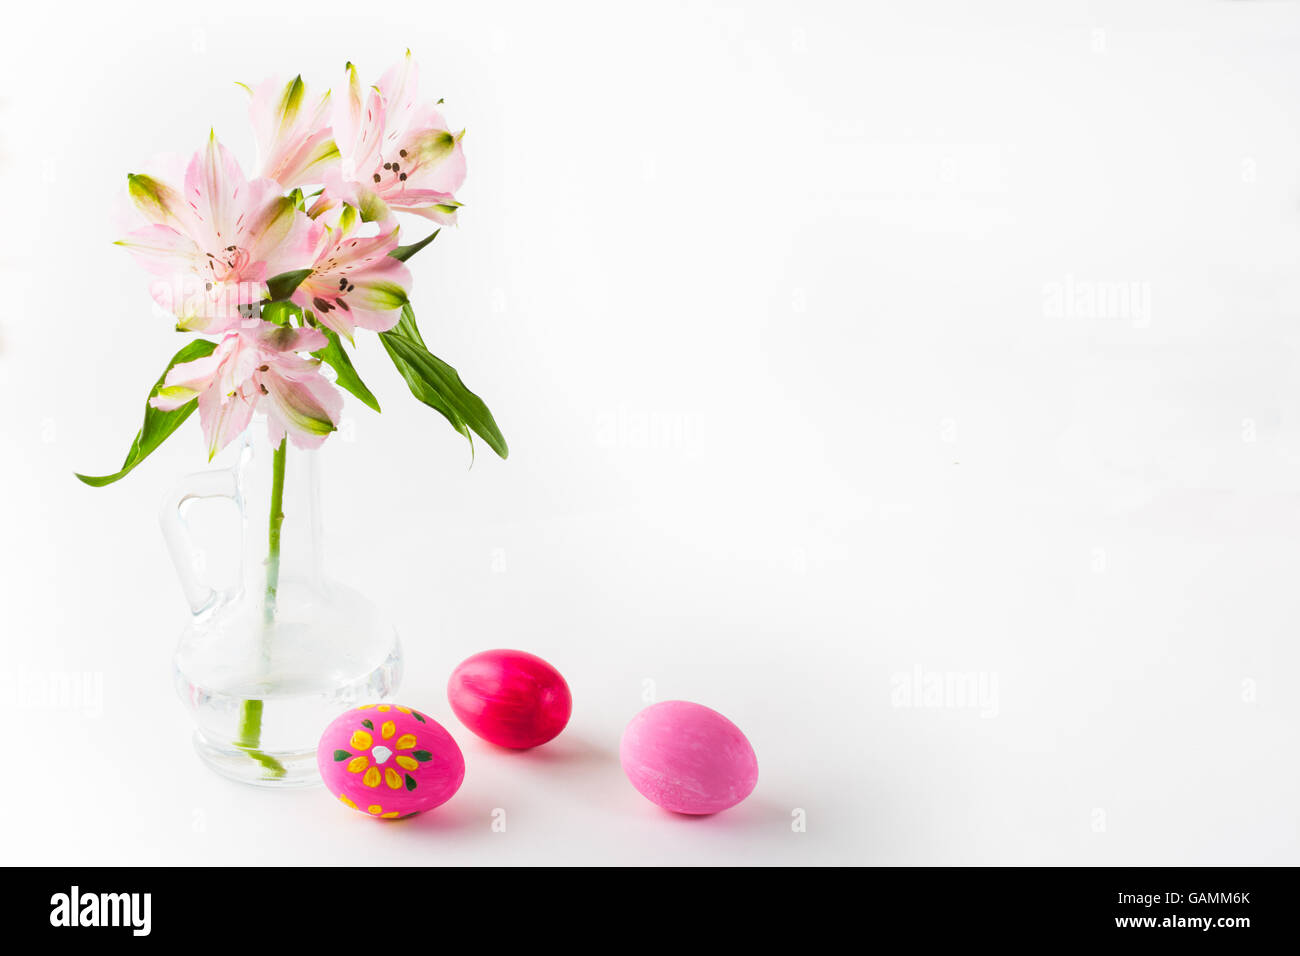 Hand Painted Pink Easter Eggs With Light Delicate Pink Flowers In A